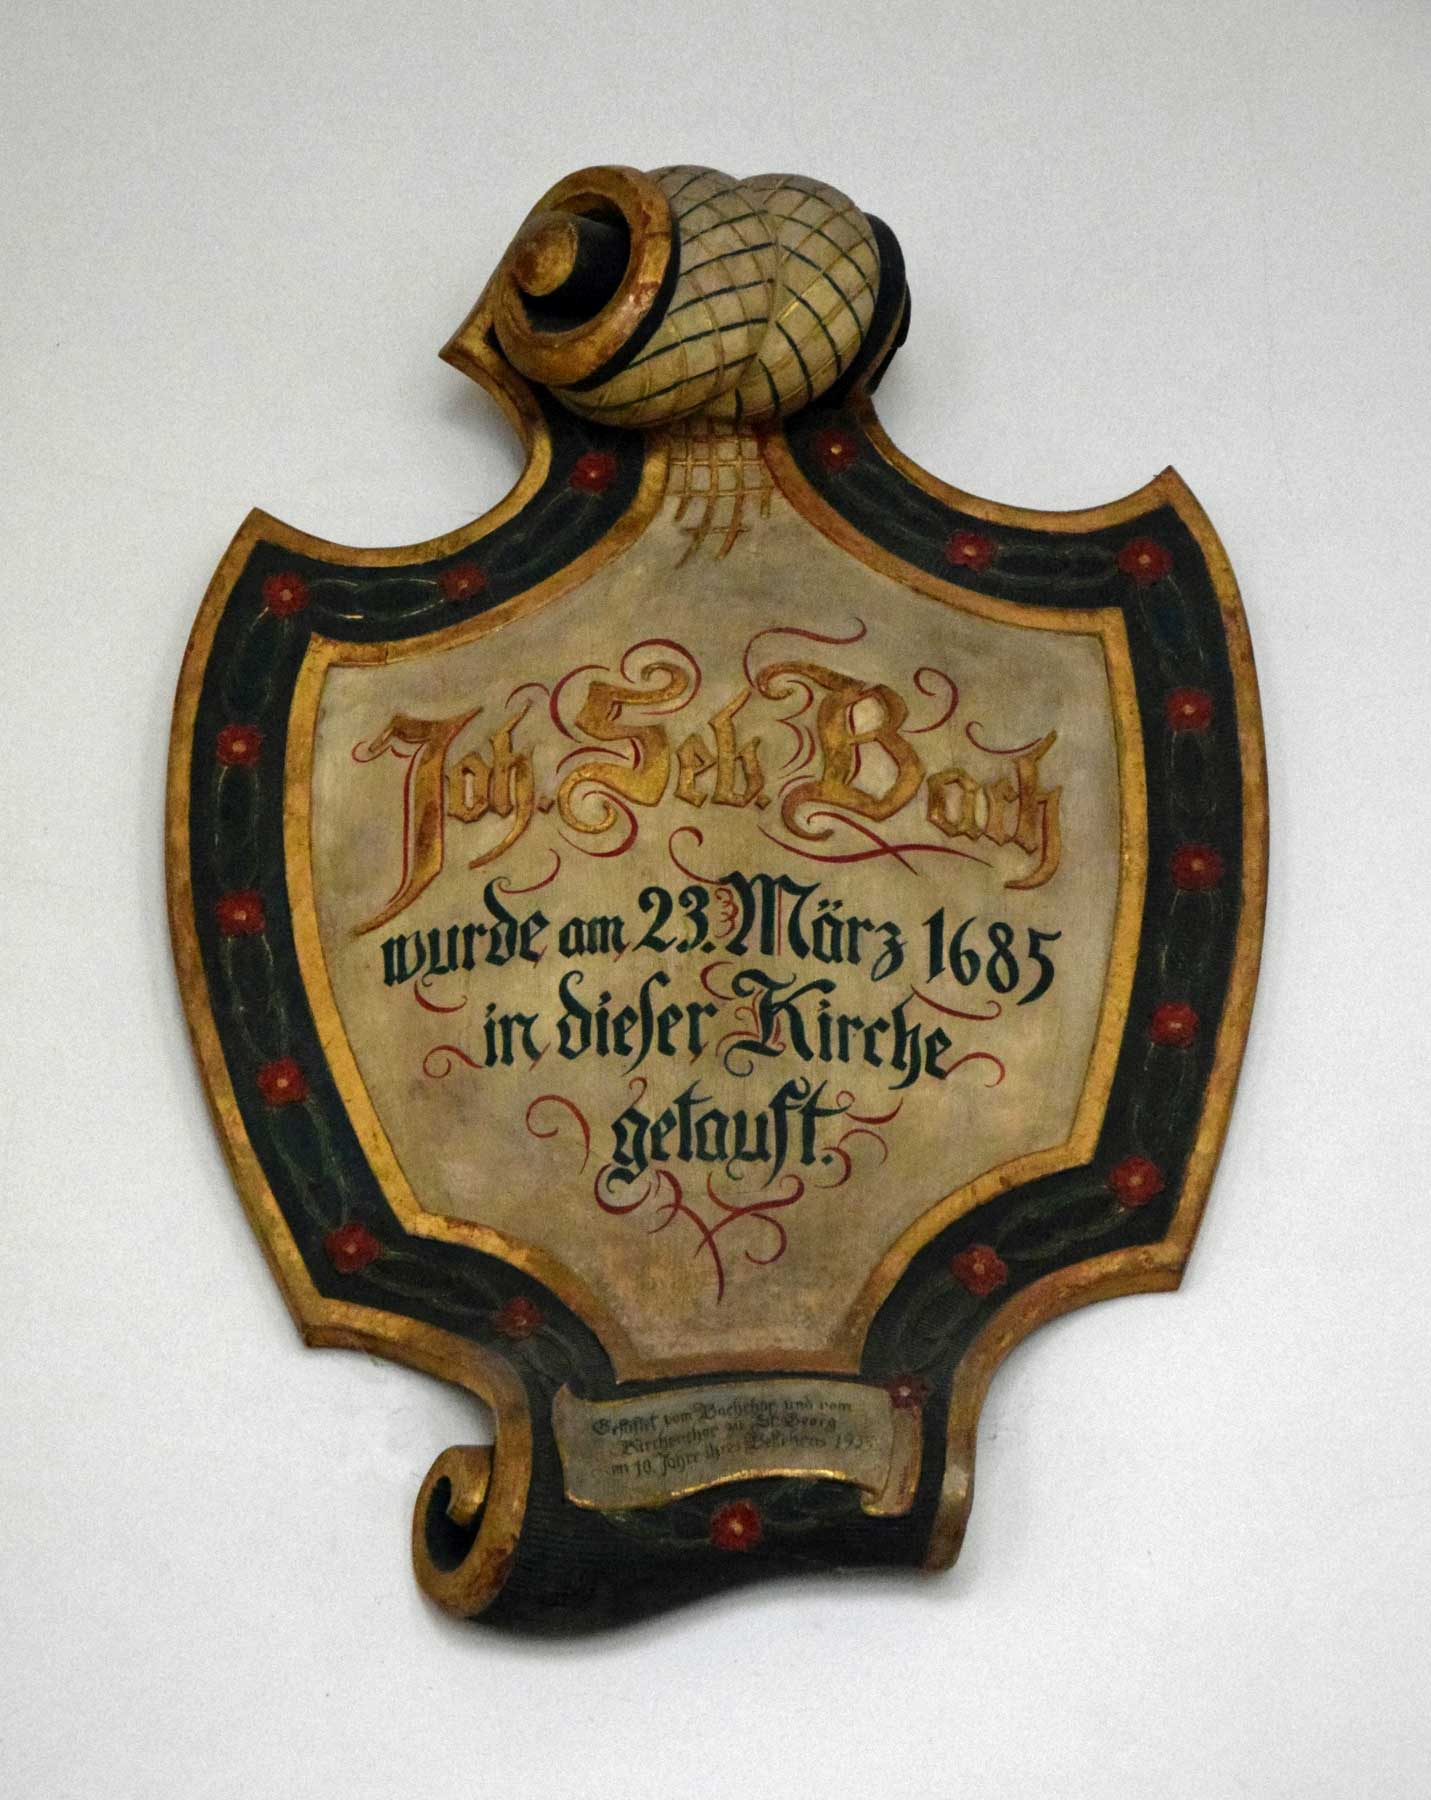 A wooden memorial plate above the entrance portal of the Georgenkirche in Eisenach, commemorating Bach's baptism according to the Julian calendar.